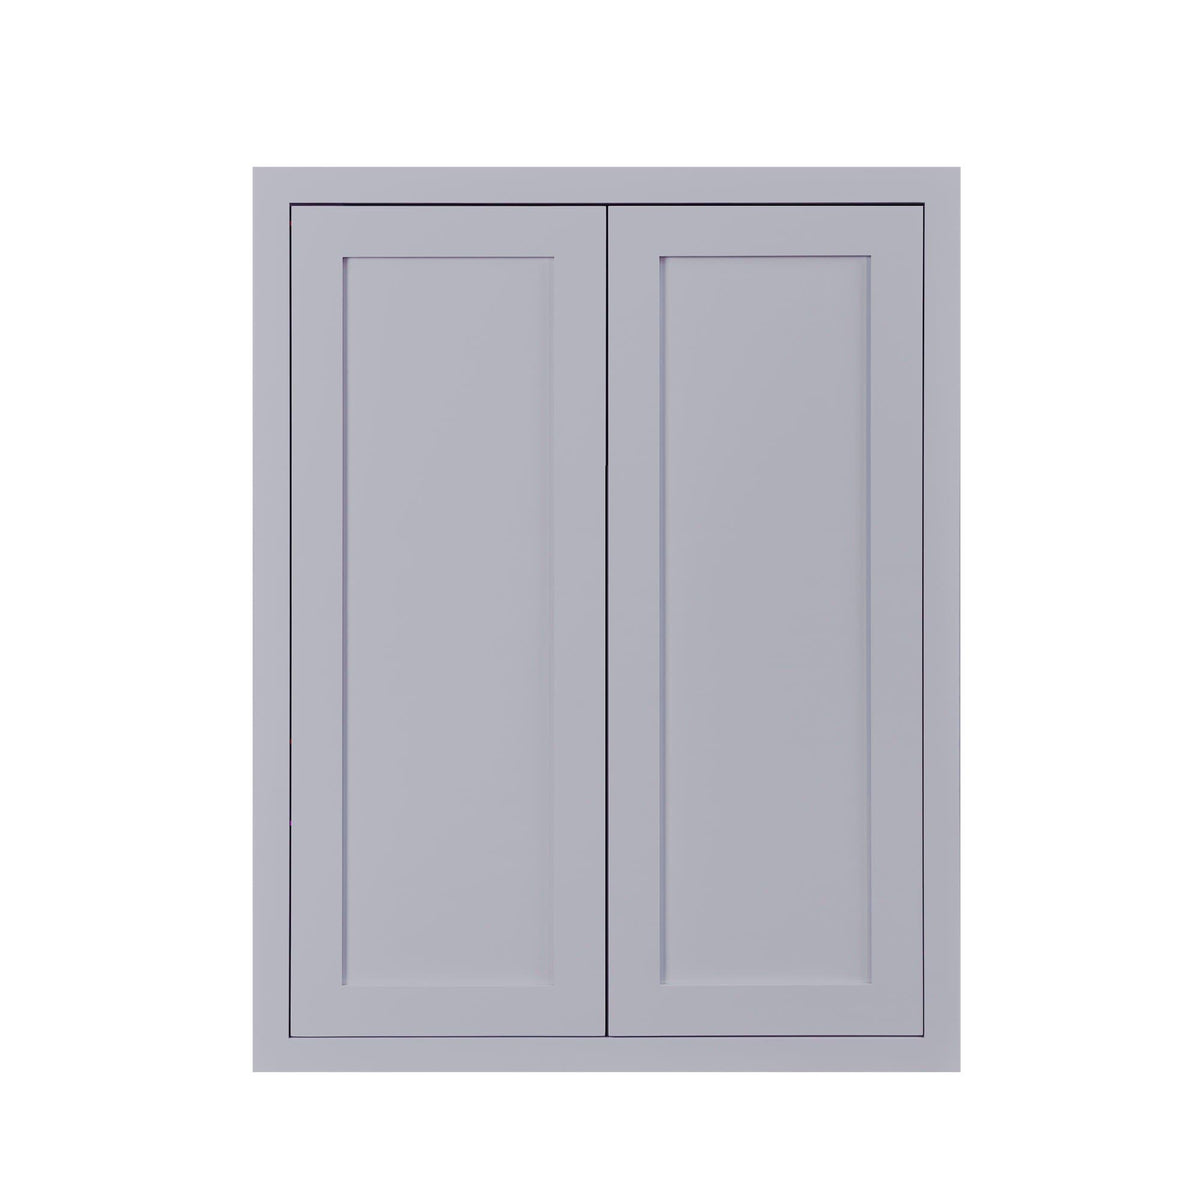 "39"" Tall Wall Cabinet 39"" Tall Light Gray Inset Shaker Wall Cabinet - Double Door -  24"", 27"", 30"", 33"" & 36"" D2W274214 Inset Kitchen Cabinets"